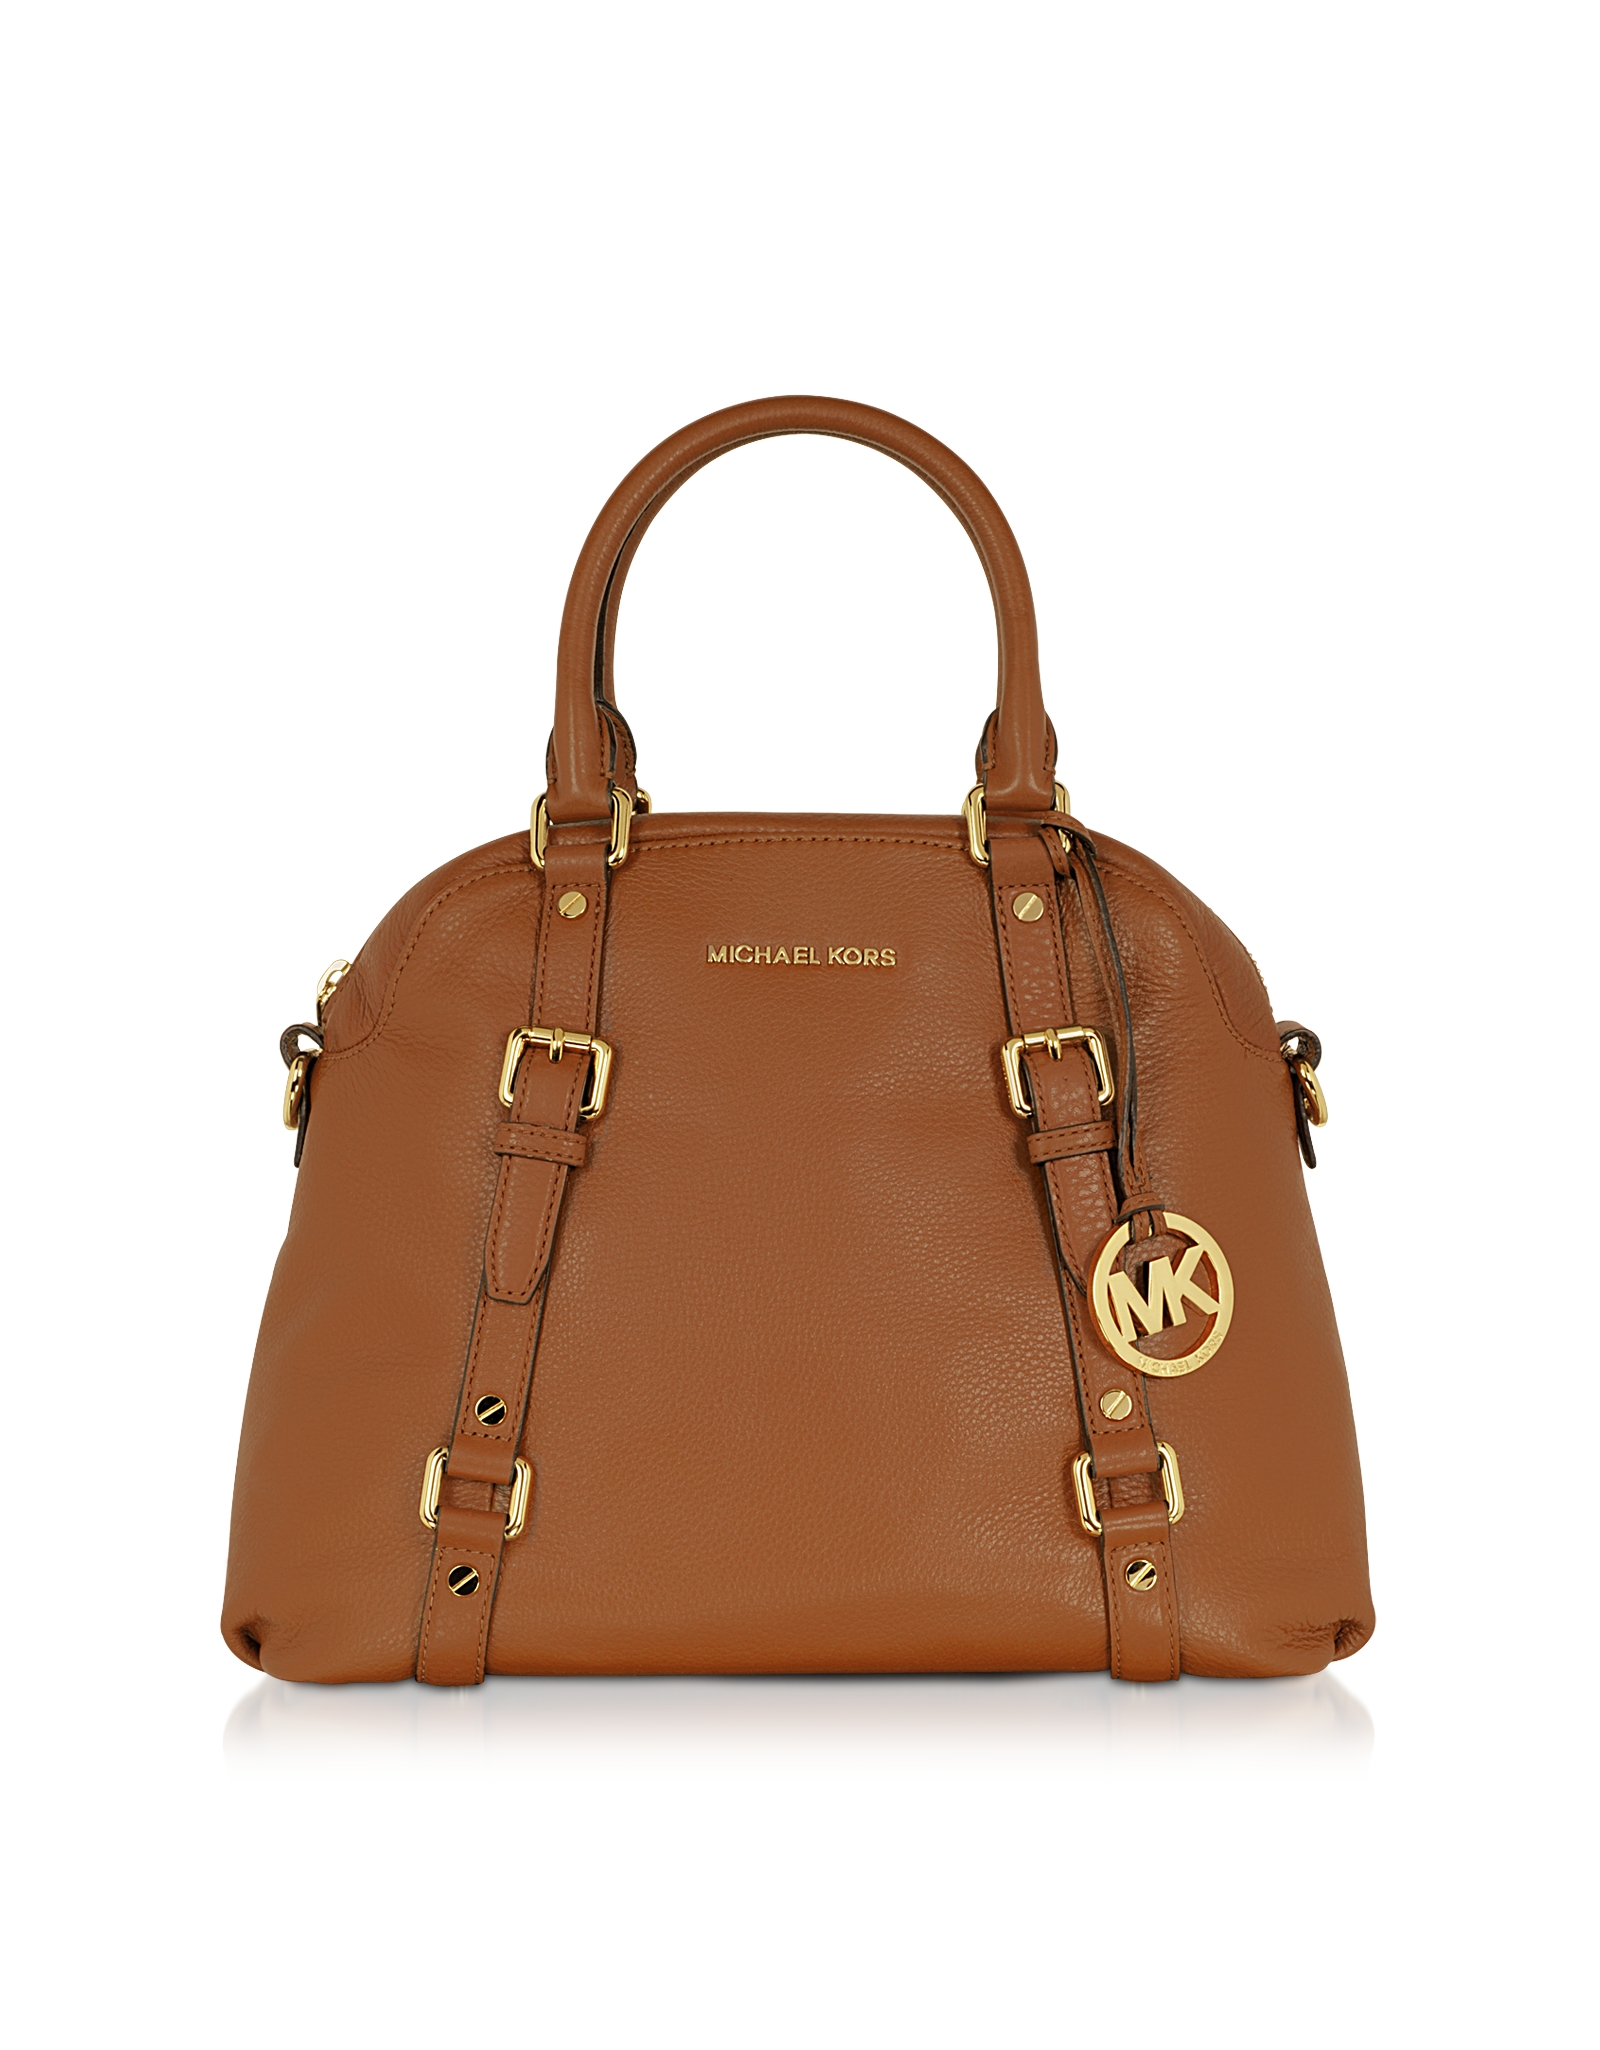 52e17c97fa95 Lyst - Michael Kors Bedford Genuine Leather Bowling Satchel Bag in Brown